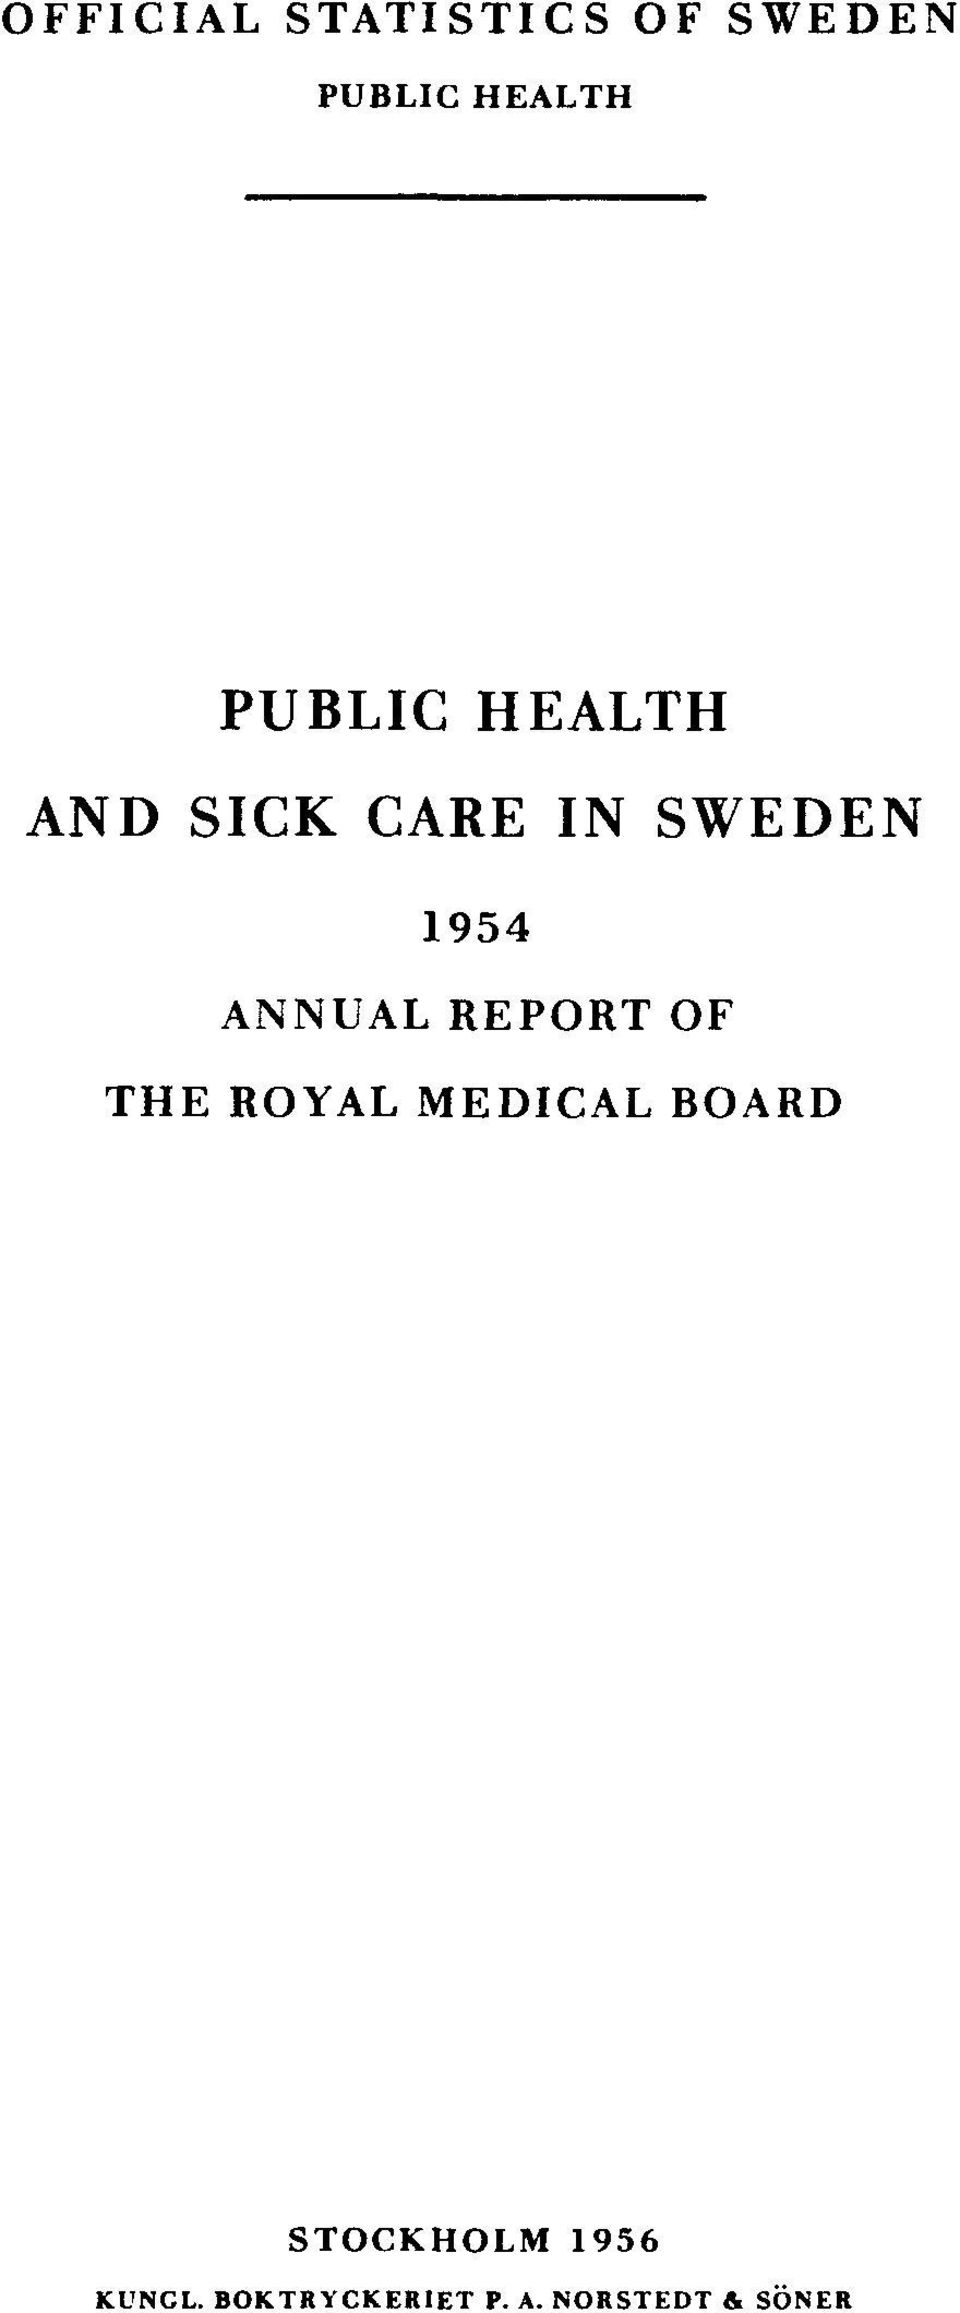 ANNUAL REPORT OF THE ROYAL MEDICAL BOARD